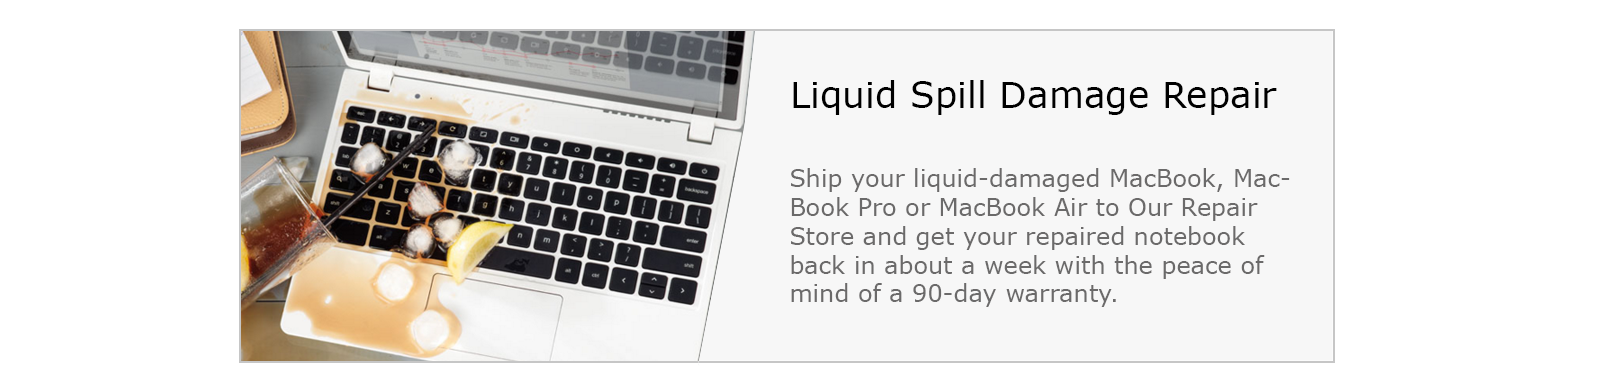 mac liquid spill damage repair